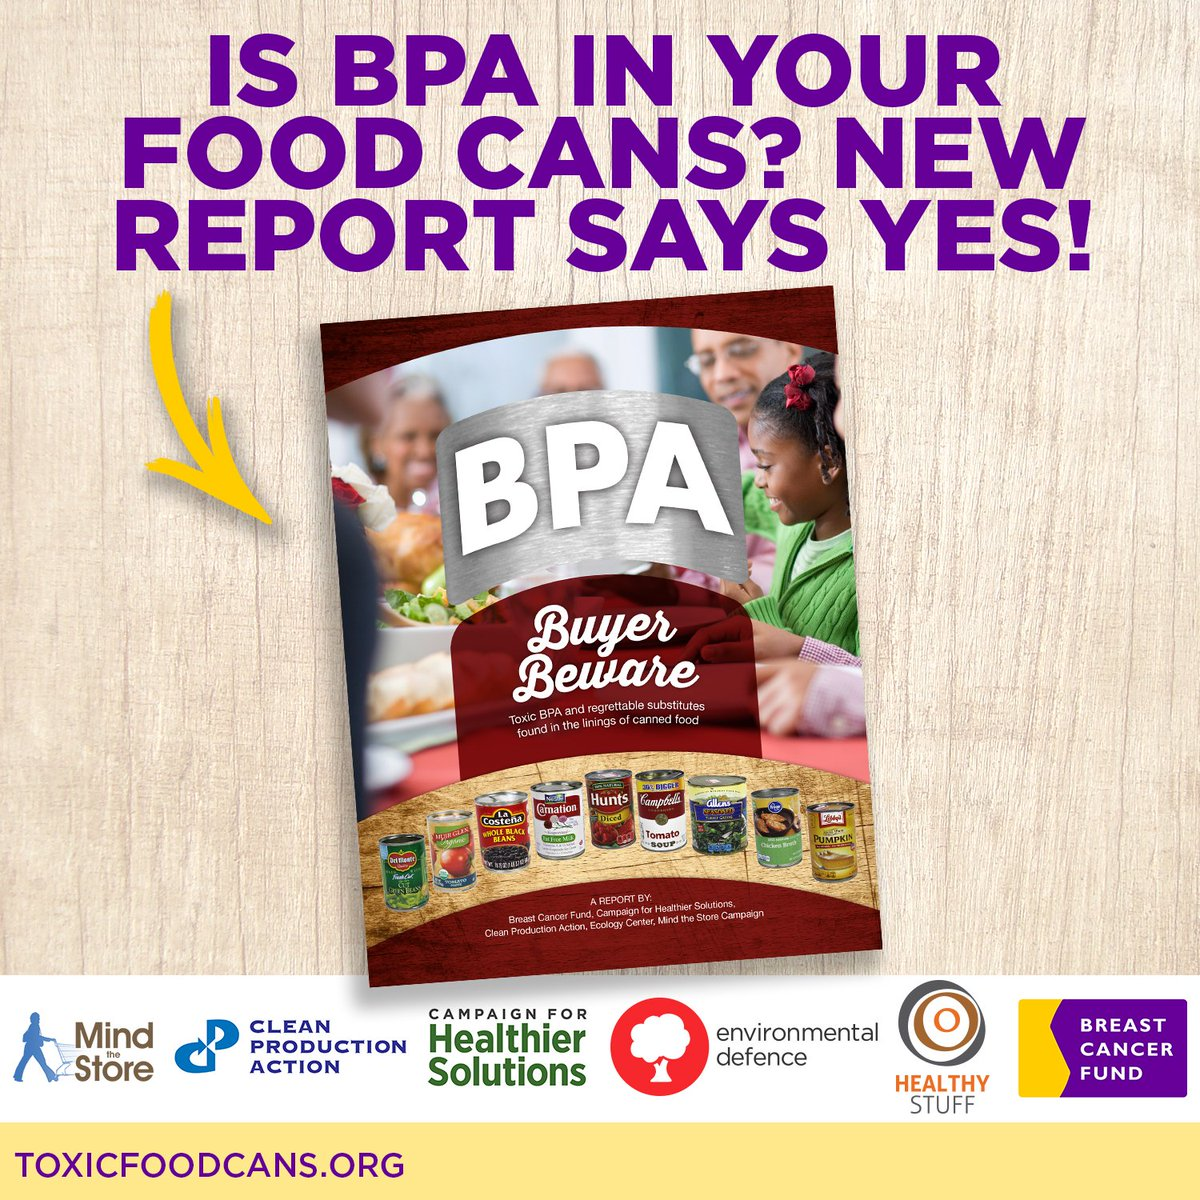 BREAKING: New report finds #BPA in 67% of food cans tested.  Read the report: https://t.co/bIa3qv2FwU #ToxicFoodCans https://t.co/EYPaJ09Kgc